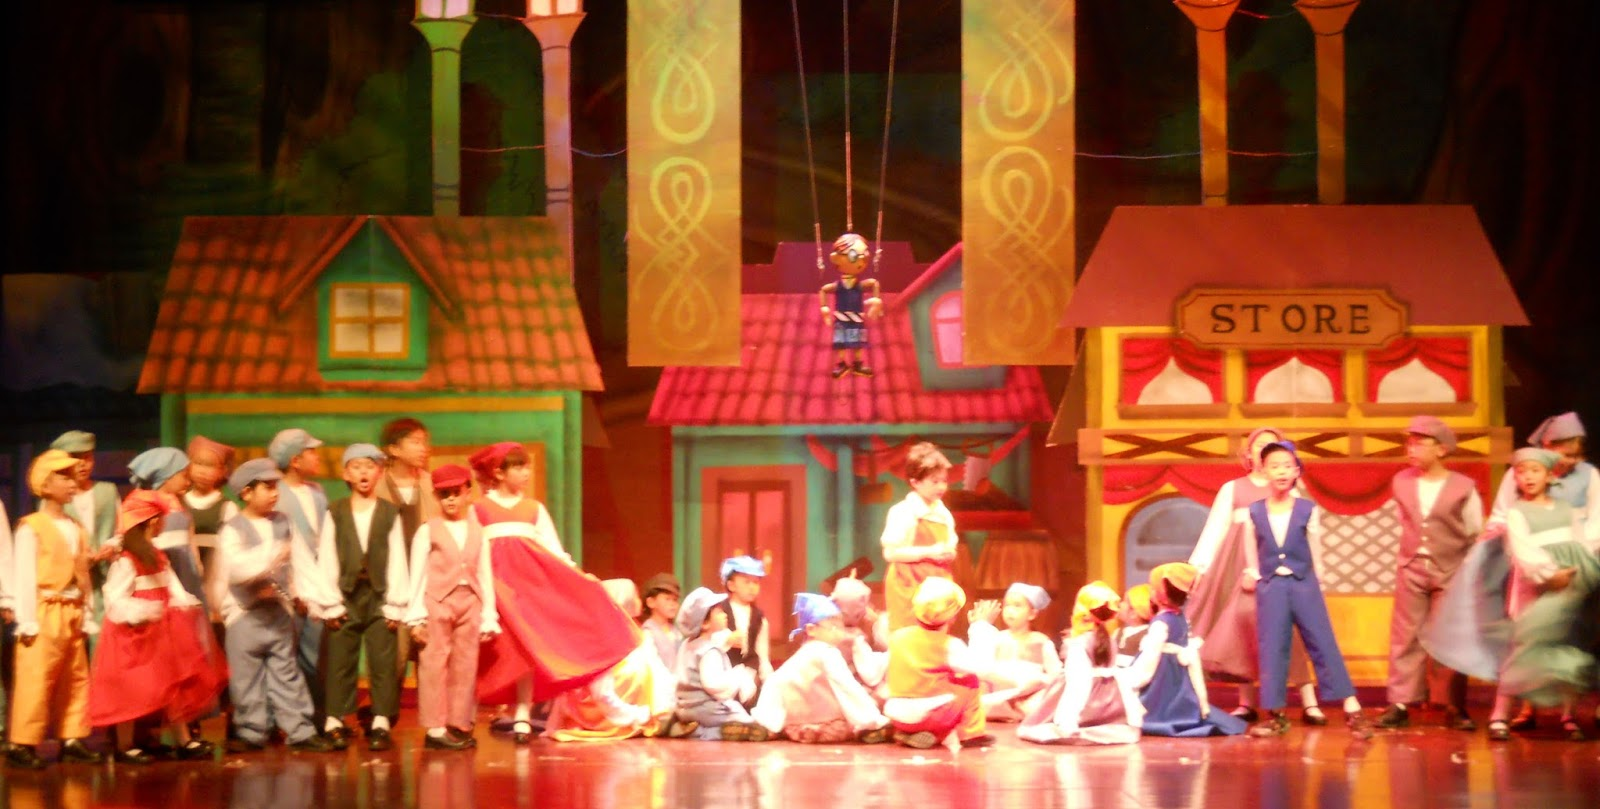 Pinocchio, The Live Marionette Musical is All Set to Open on